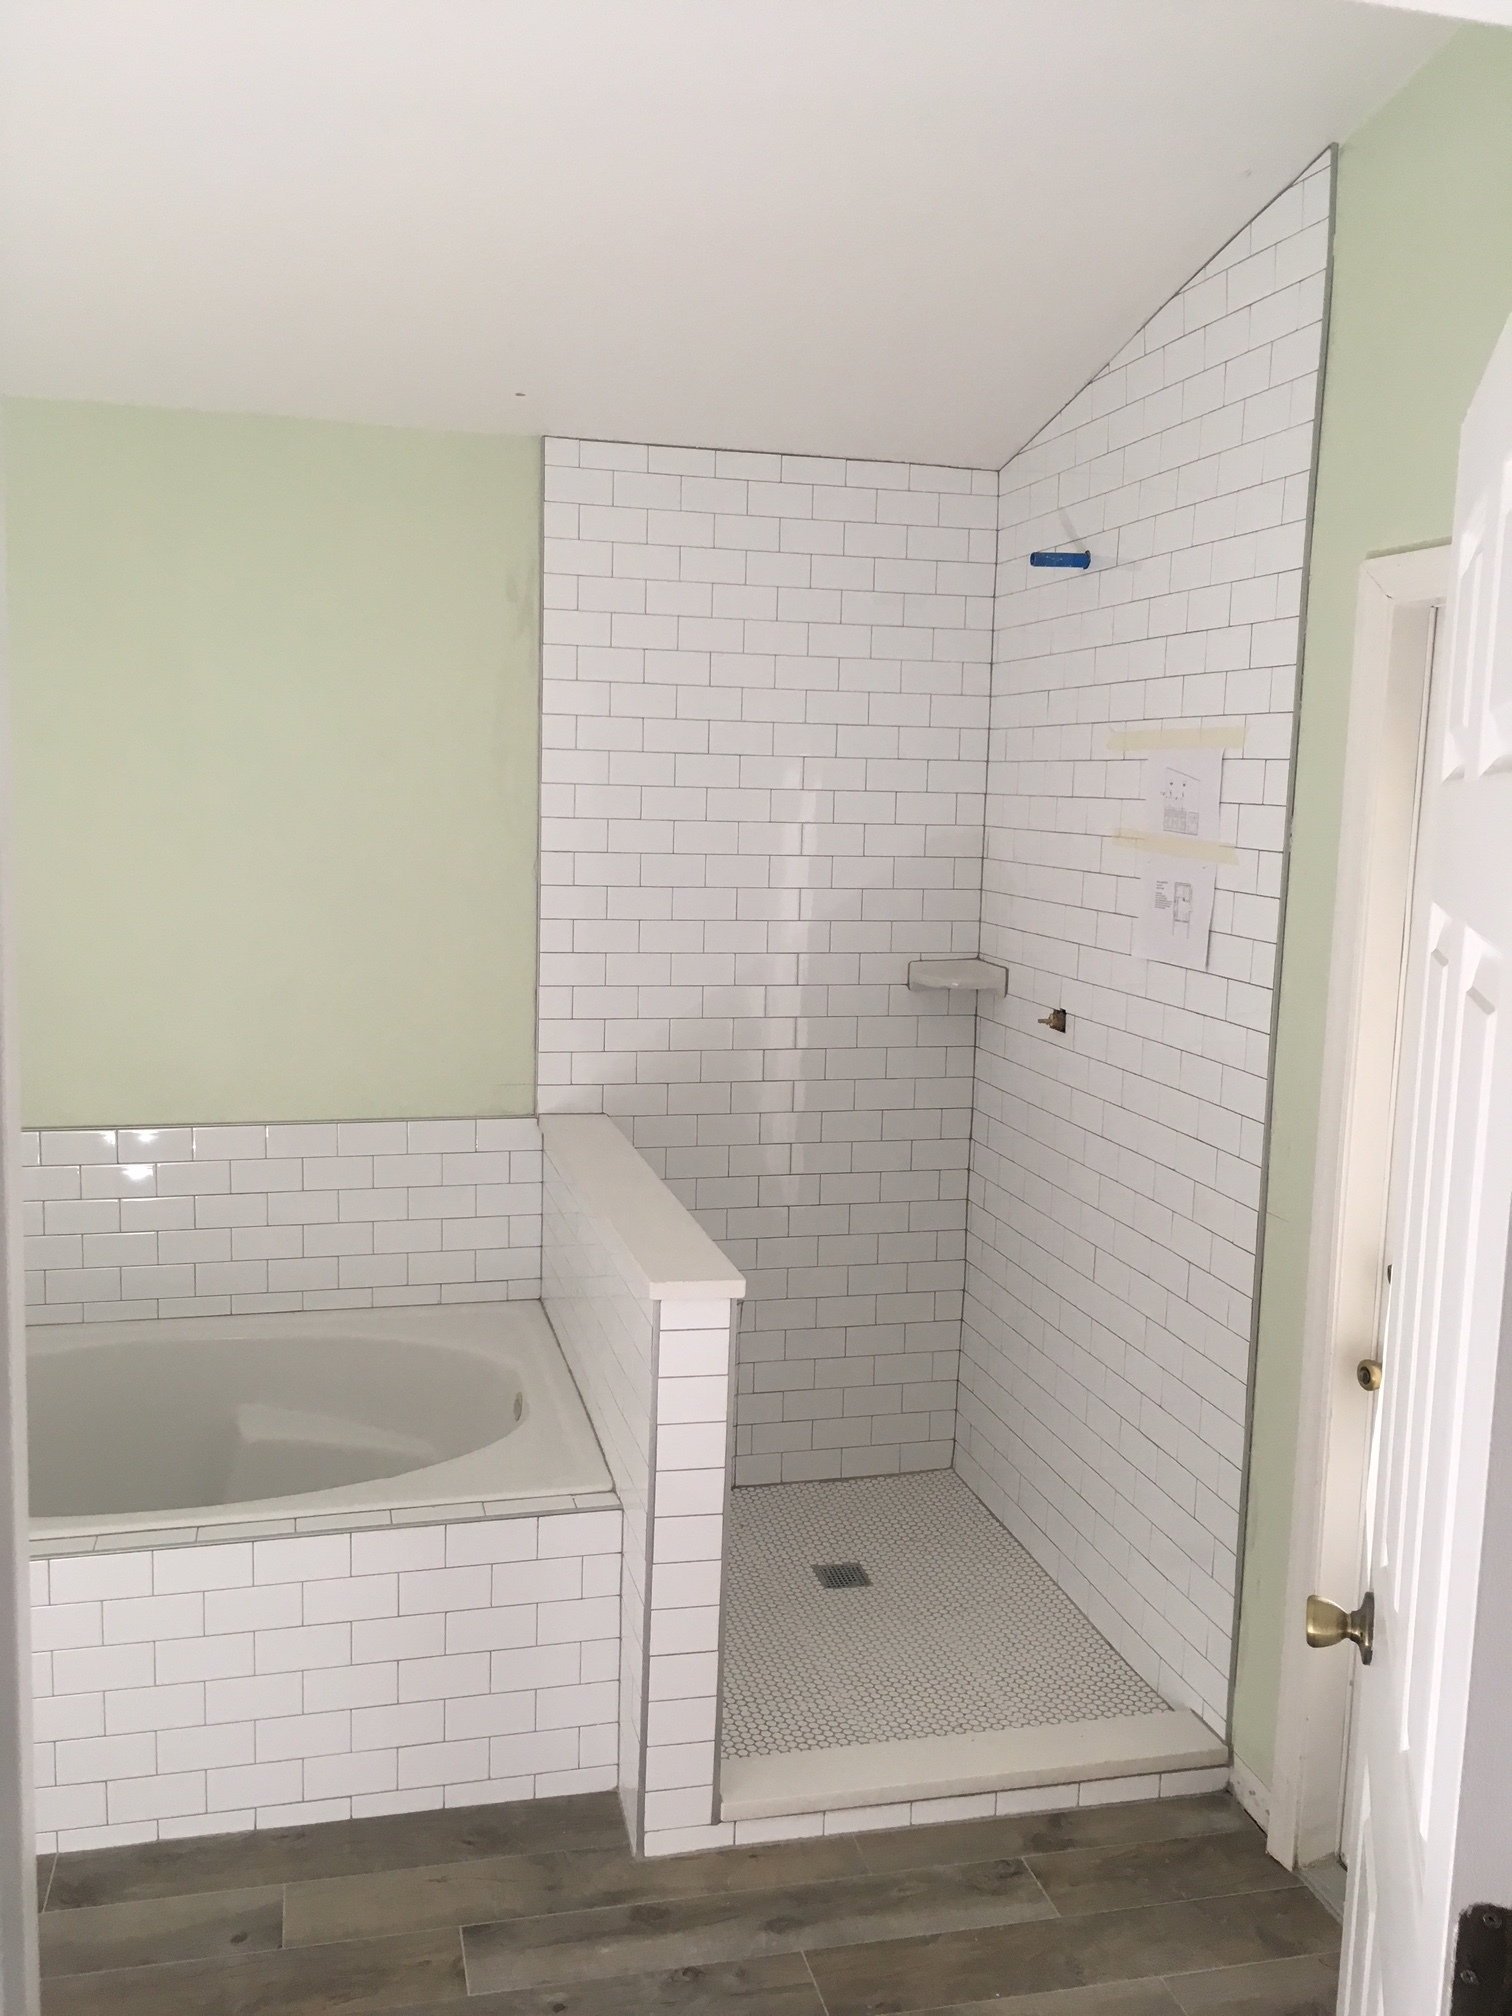 Bathroom Remodel Final Step Tile And Paint All Time